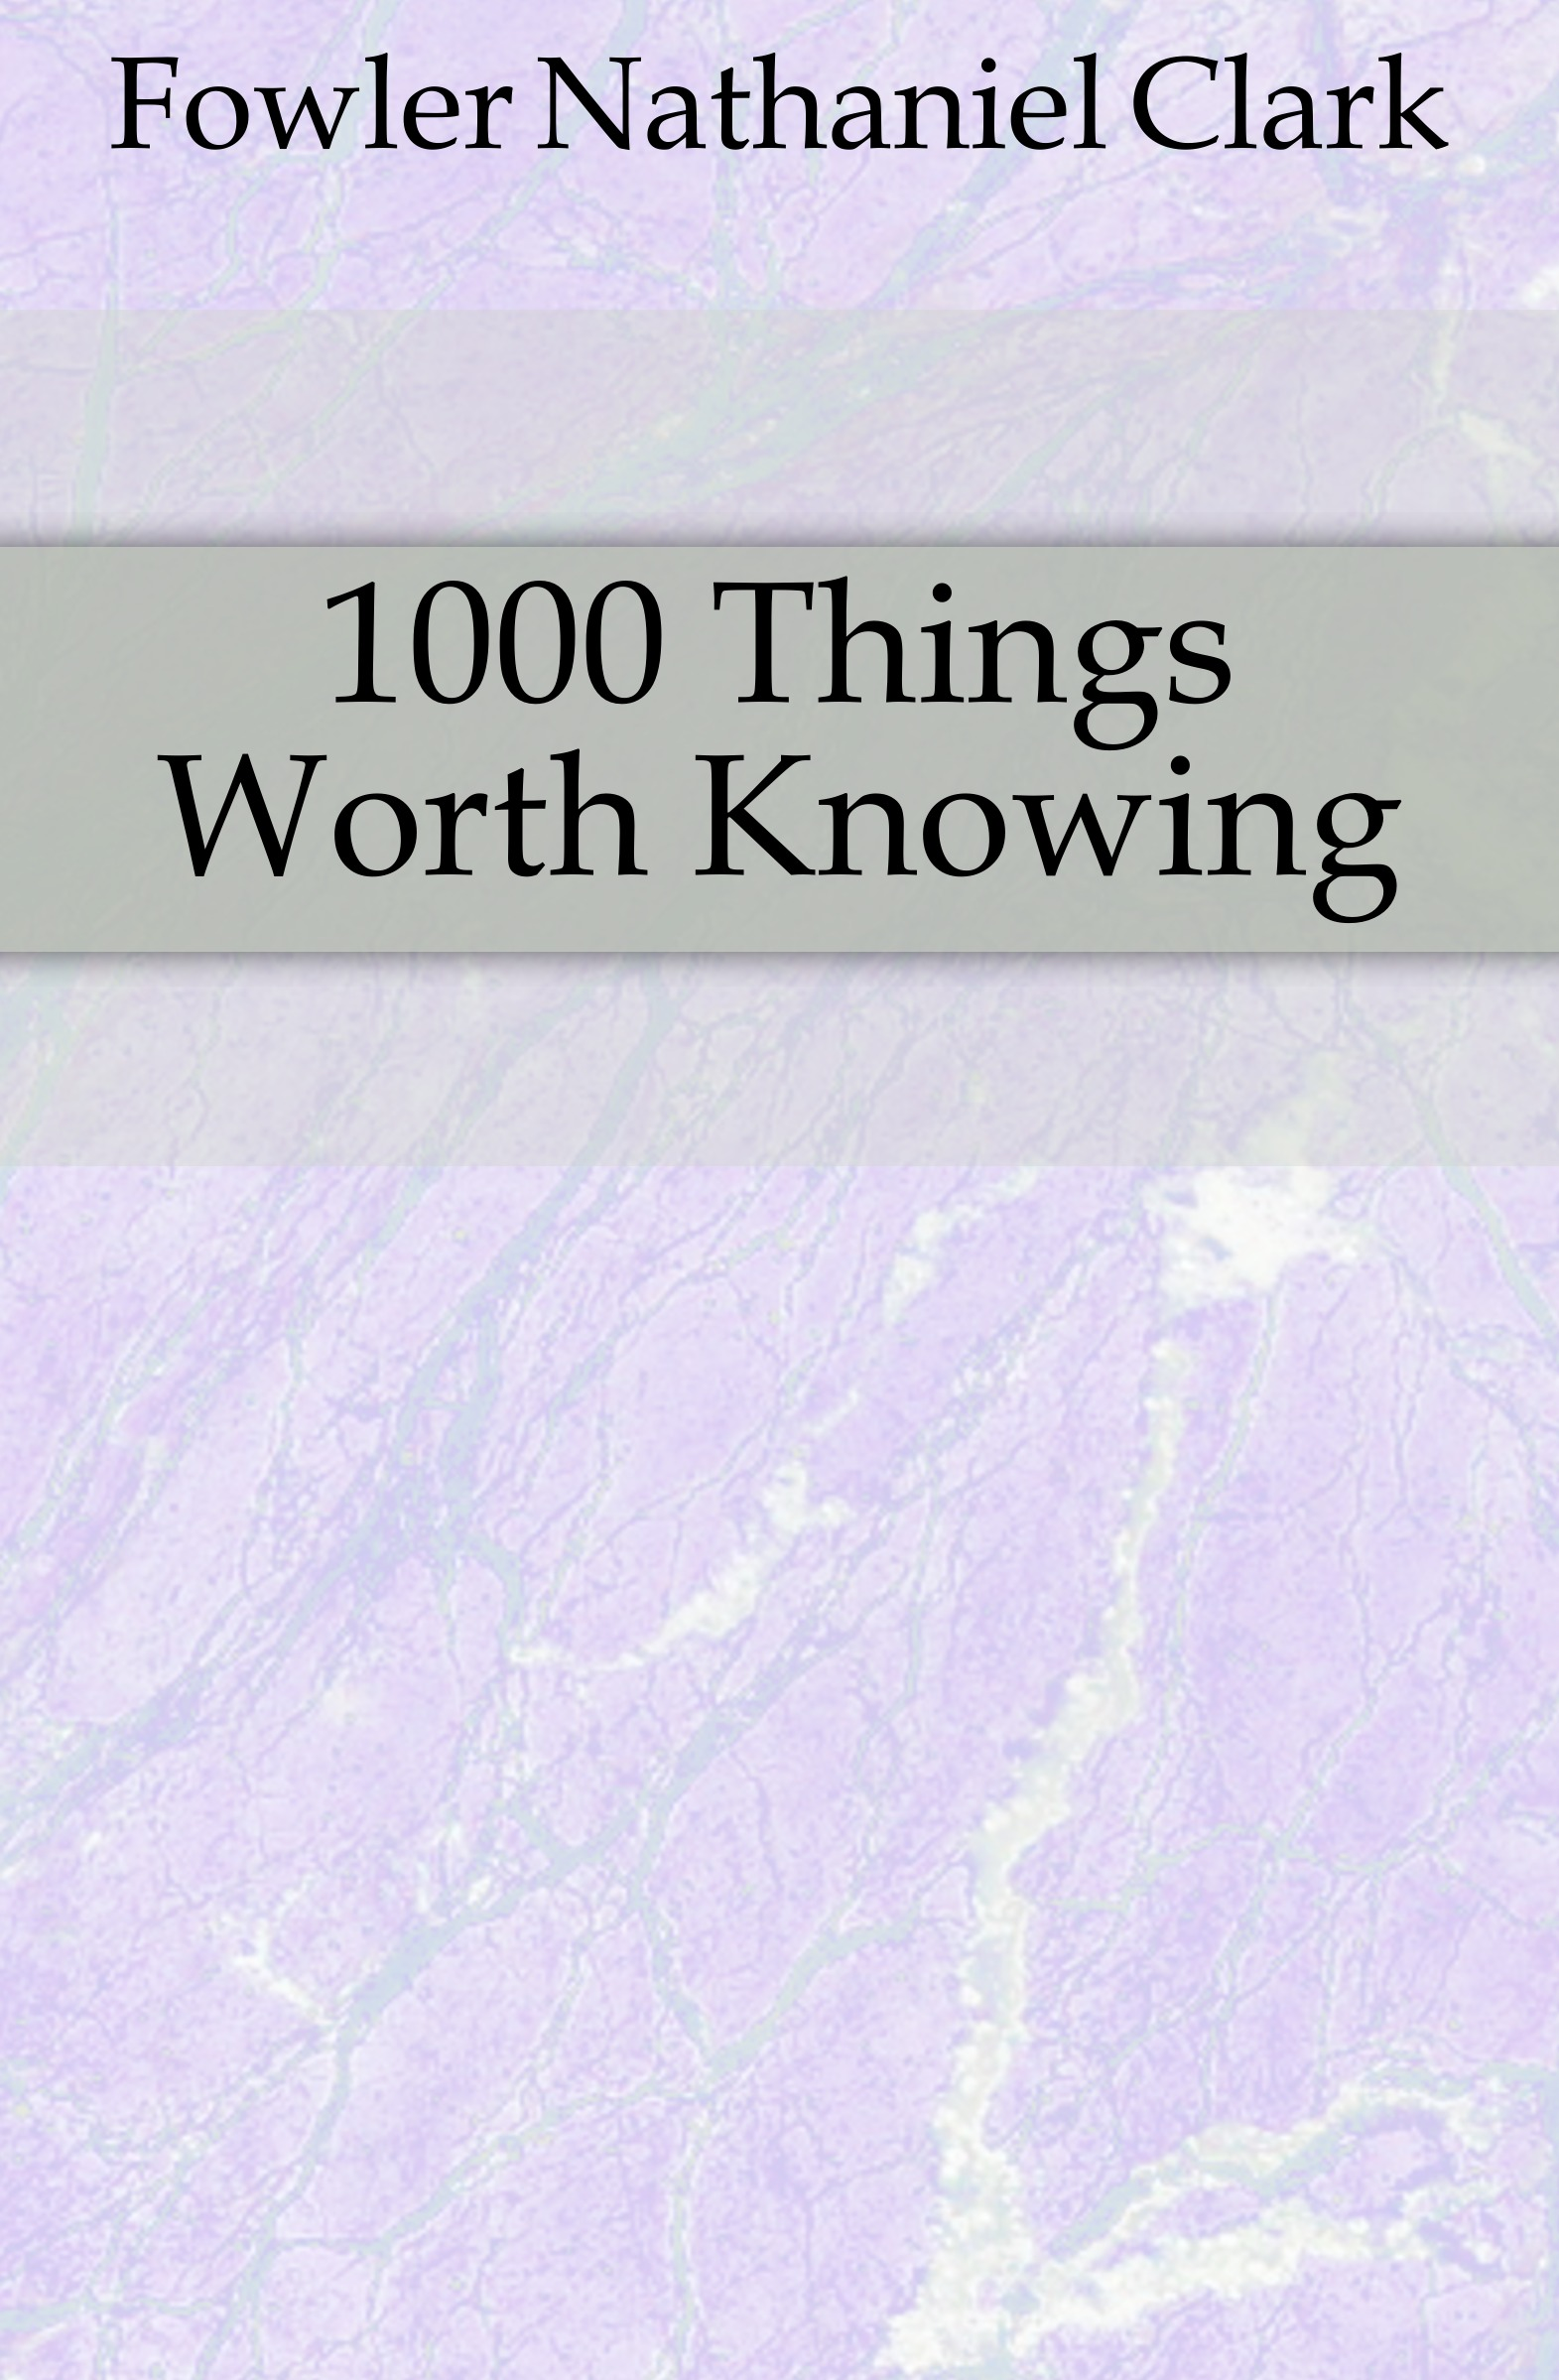 лучшая цена Fowler Nathaniel Clark 1000 Things Worth Knowing